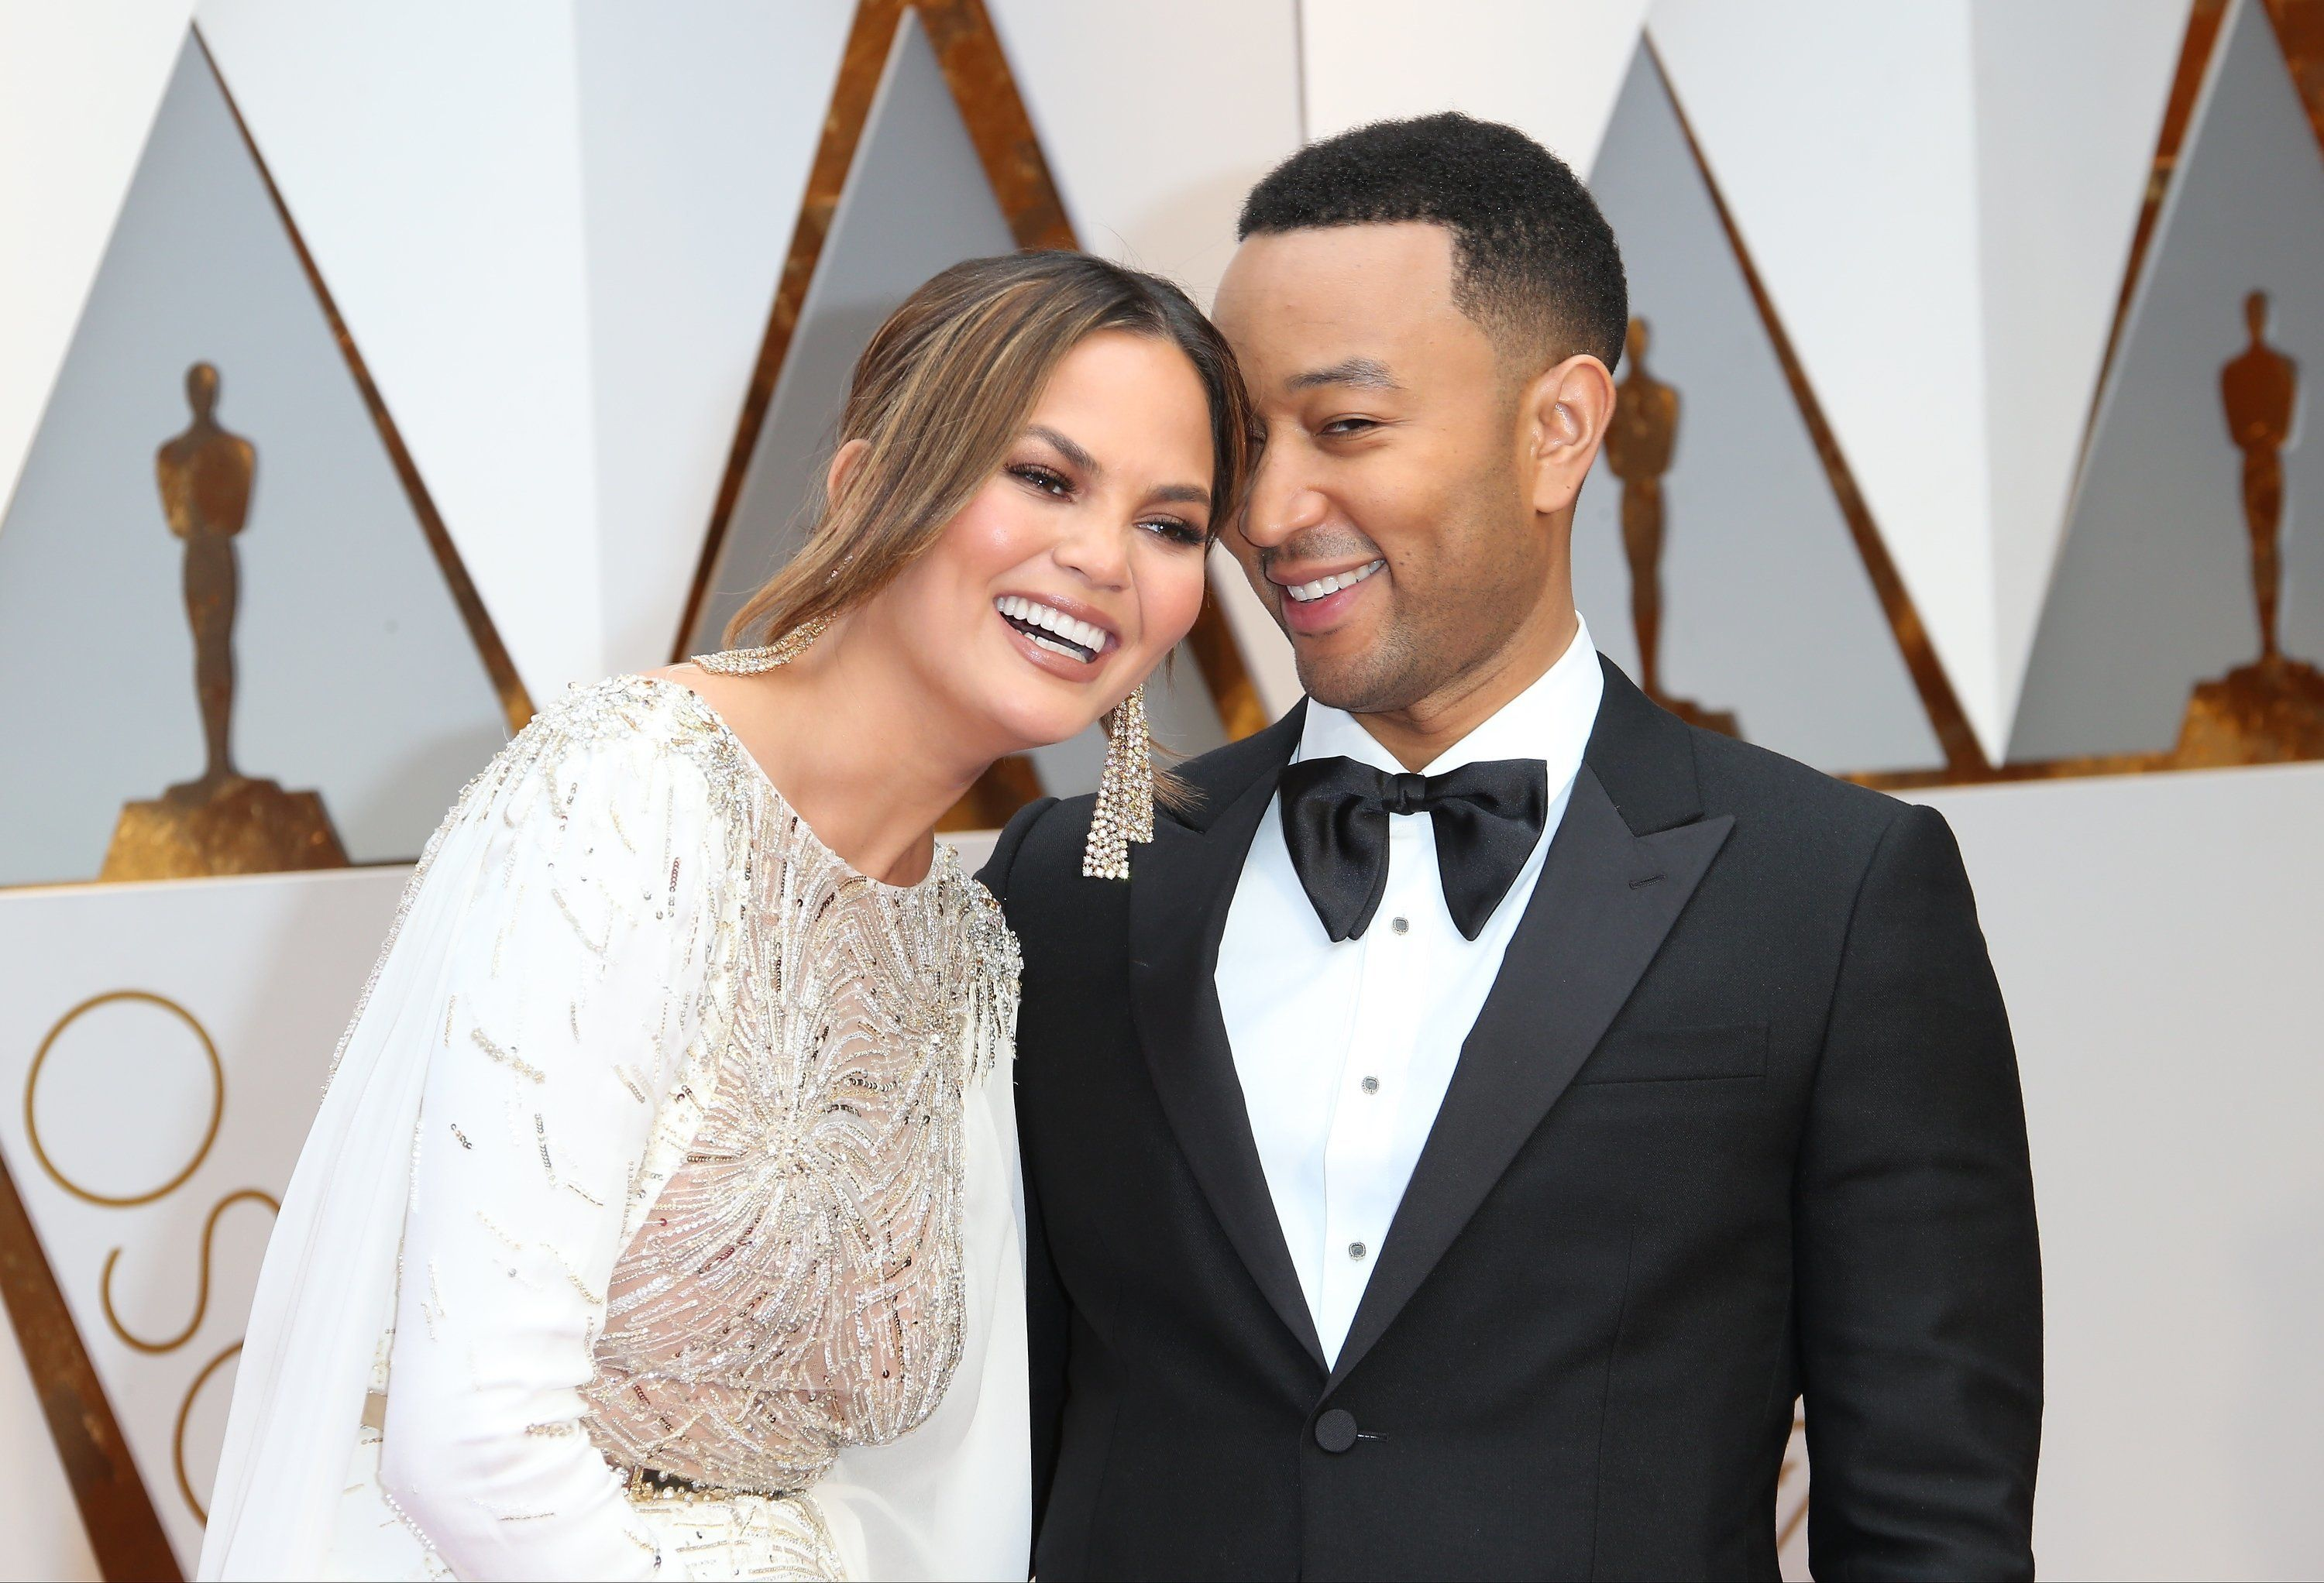 Chrissy Teigen got real aboutbeing a celebrity parent in an interview with Yahoo Style.